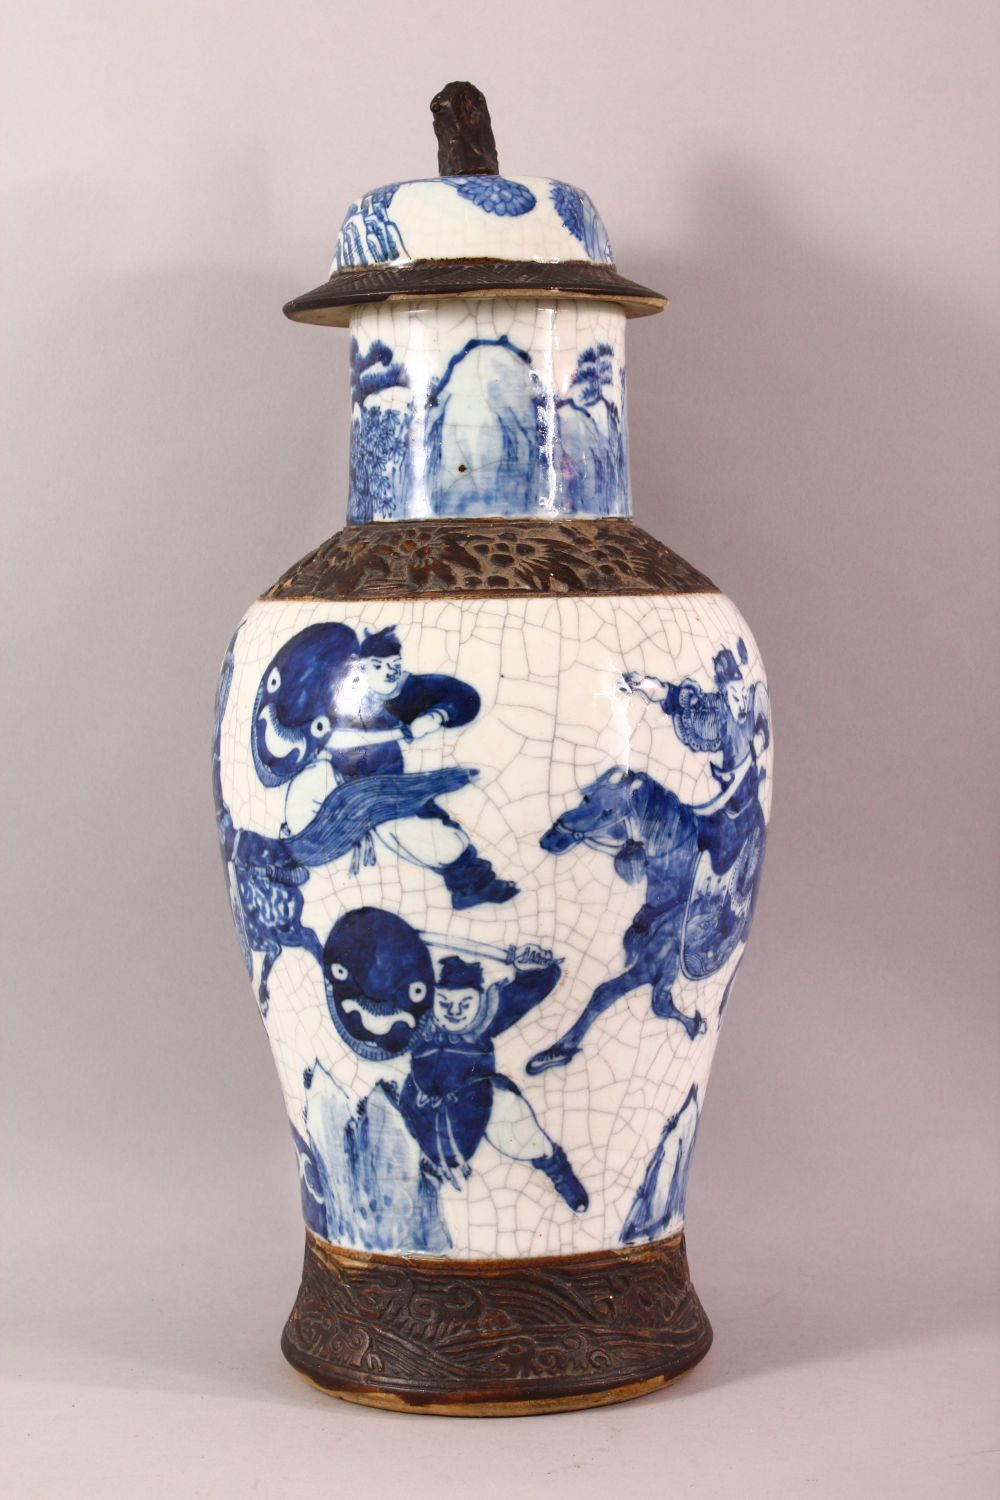 A LARGE 19TH CENTURY CHINESE BLUE & WHITE PORCELAIN VASE, decorated with scenes of warriors , with - Image 2 of 8